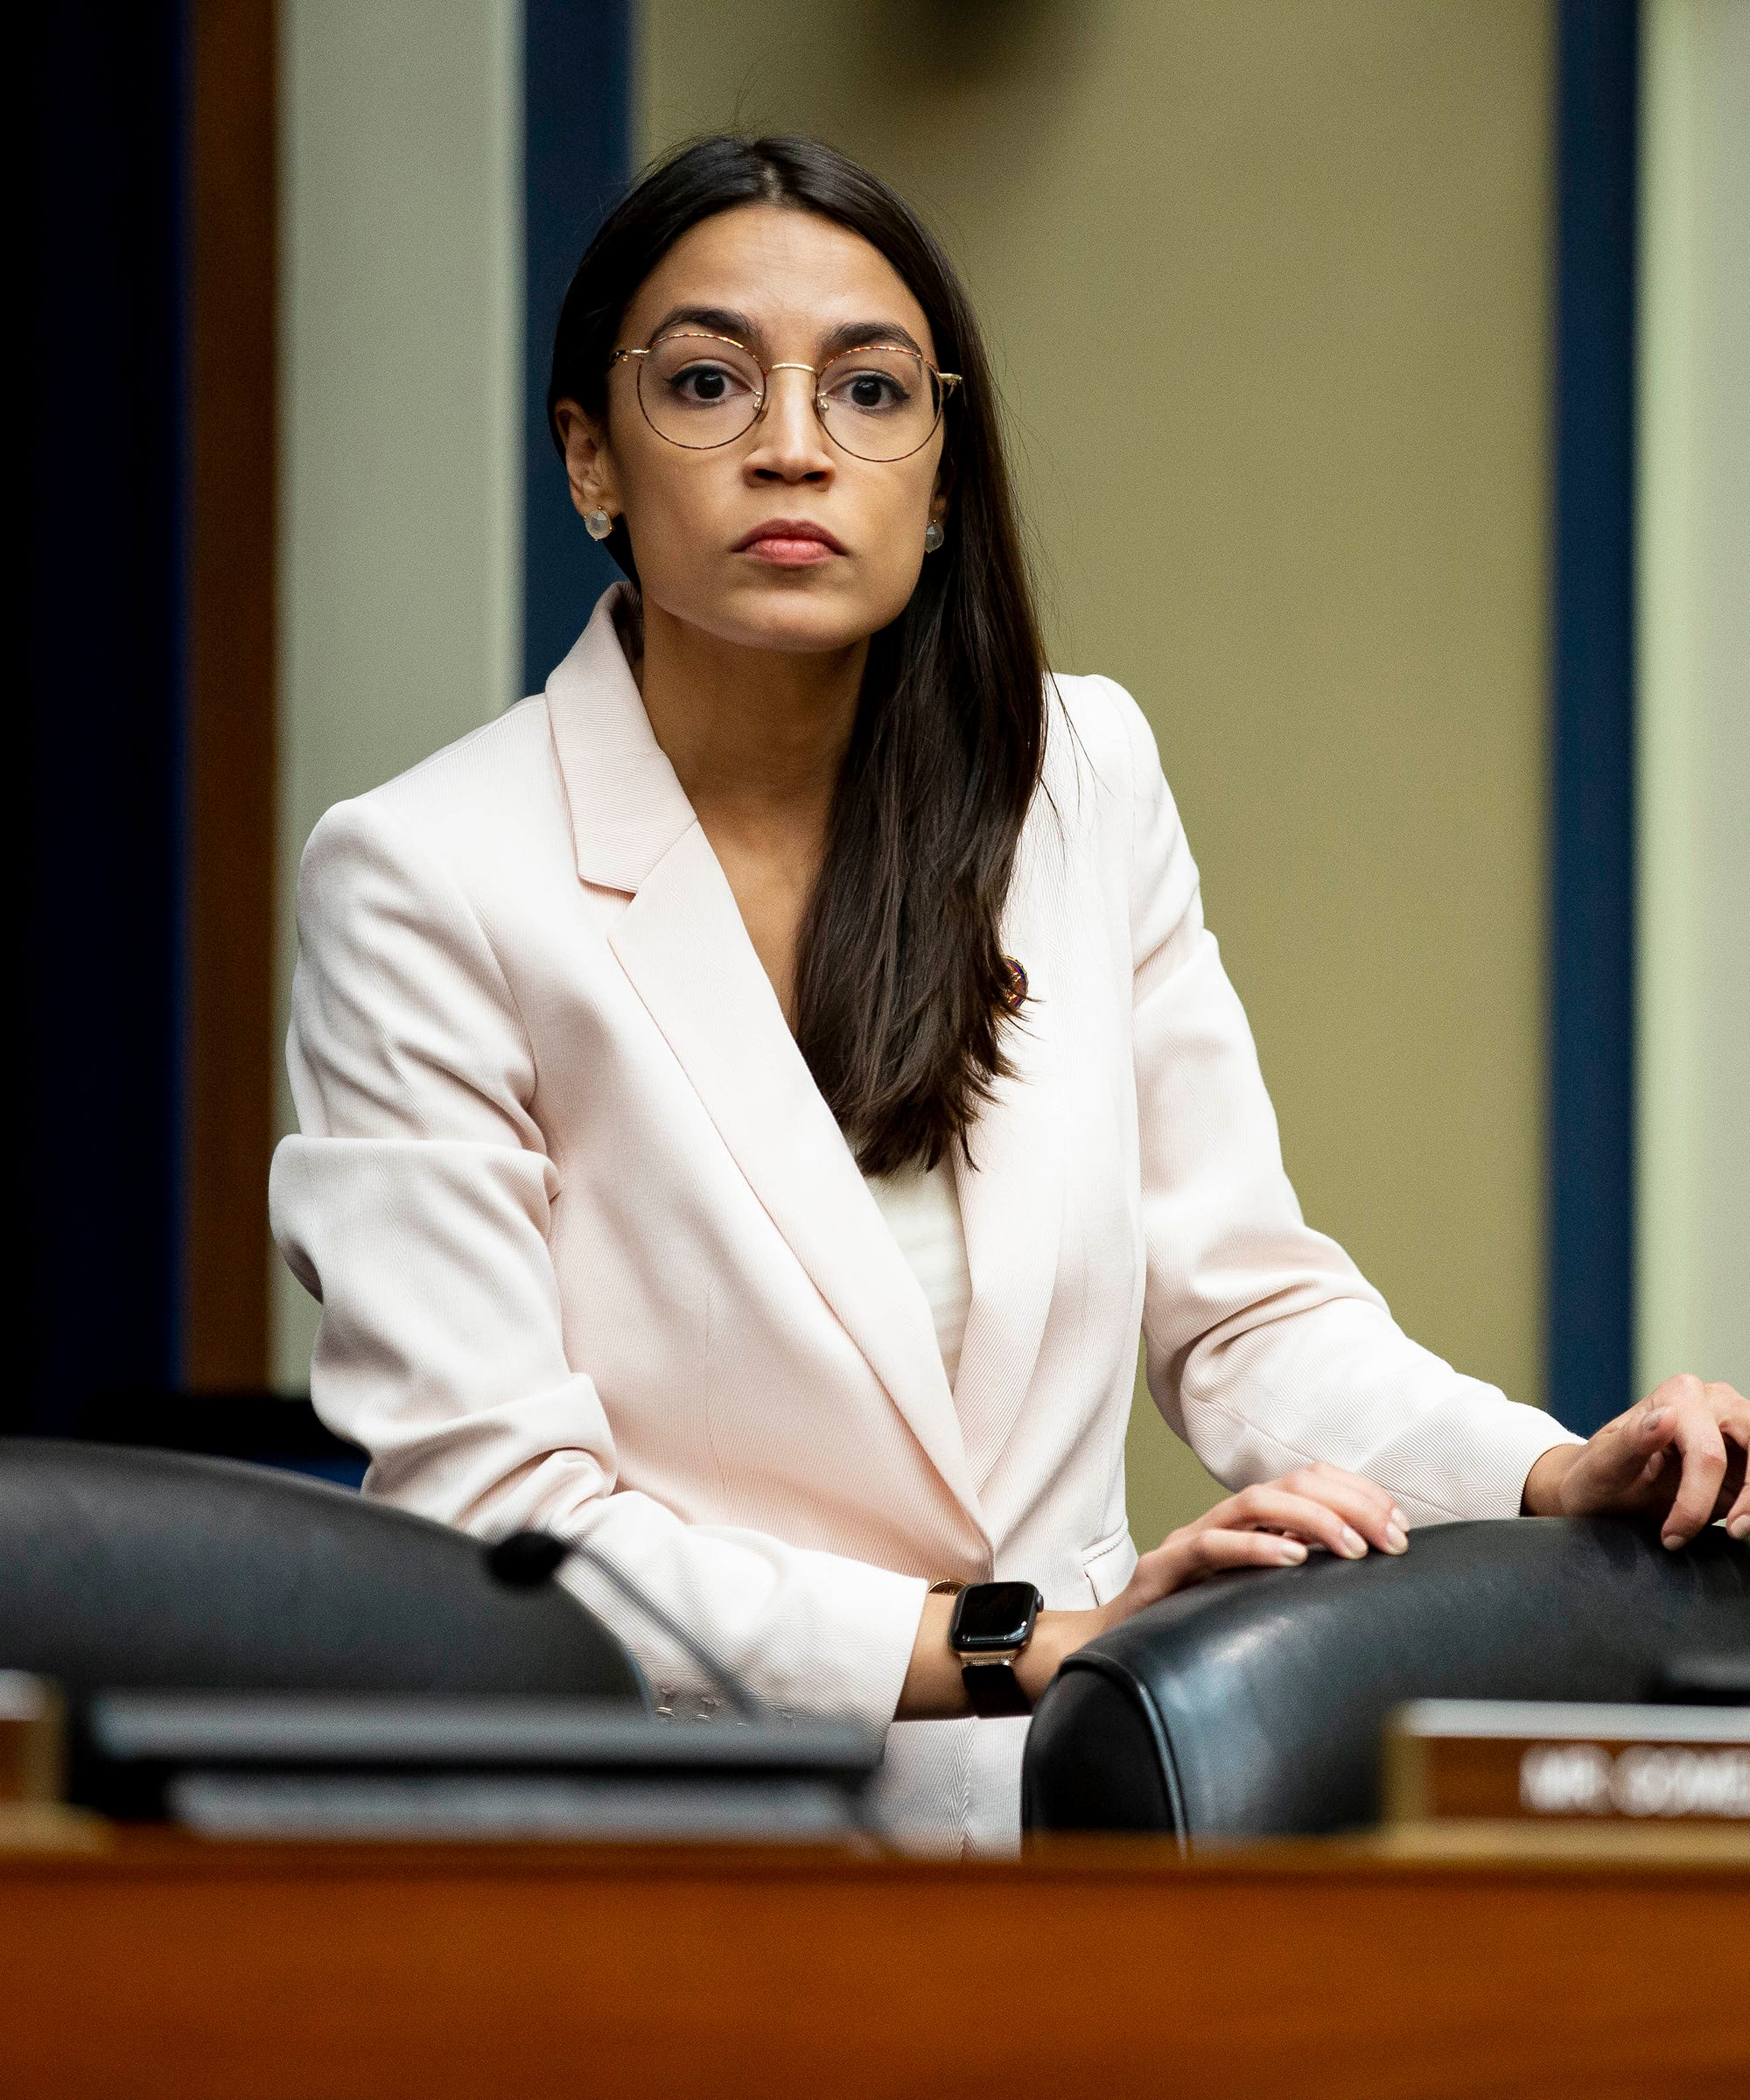 Man Arrested After Breaking Into AOC's Office & Spraying Fire Extinguisher At Police